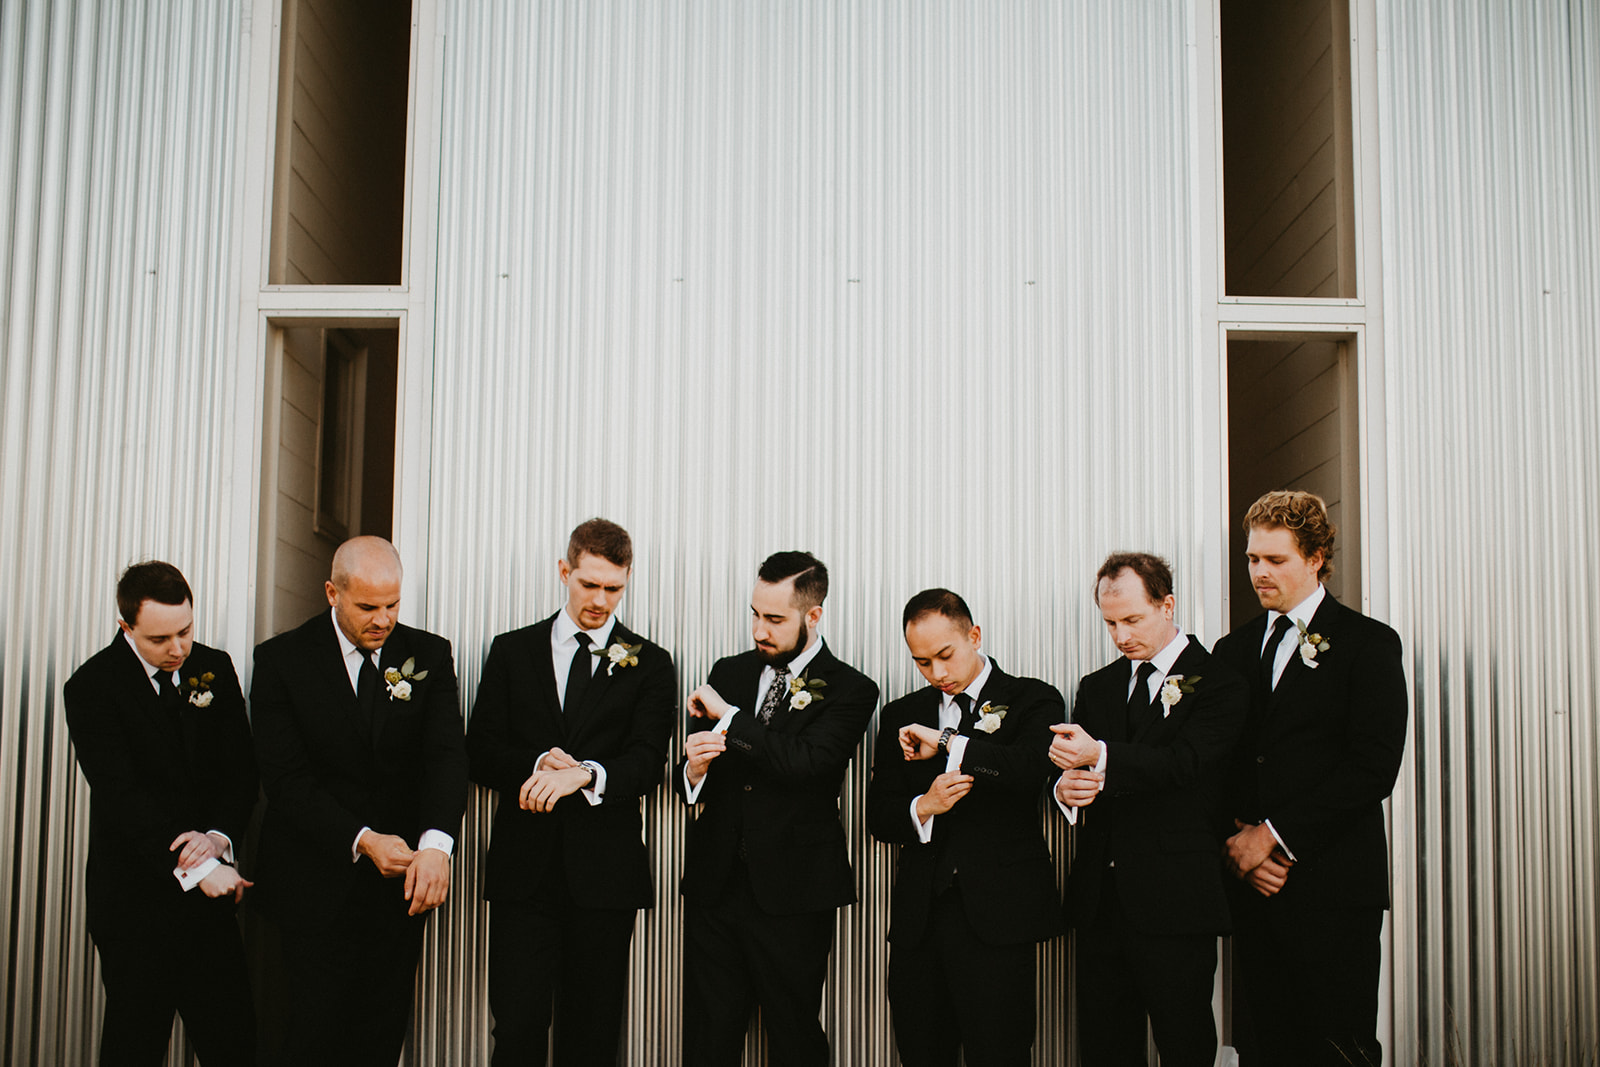 Groom Groomsmen Attire Suit + Floral Tie + Boutonnière with hops + craft brew beer + black + austin wedding venue prospect house + austin wedding planner epoch co